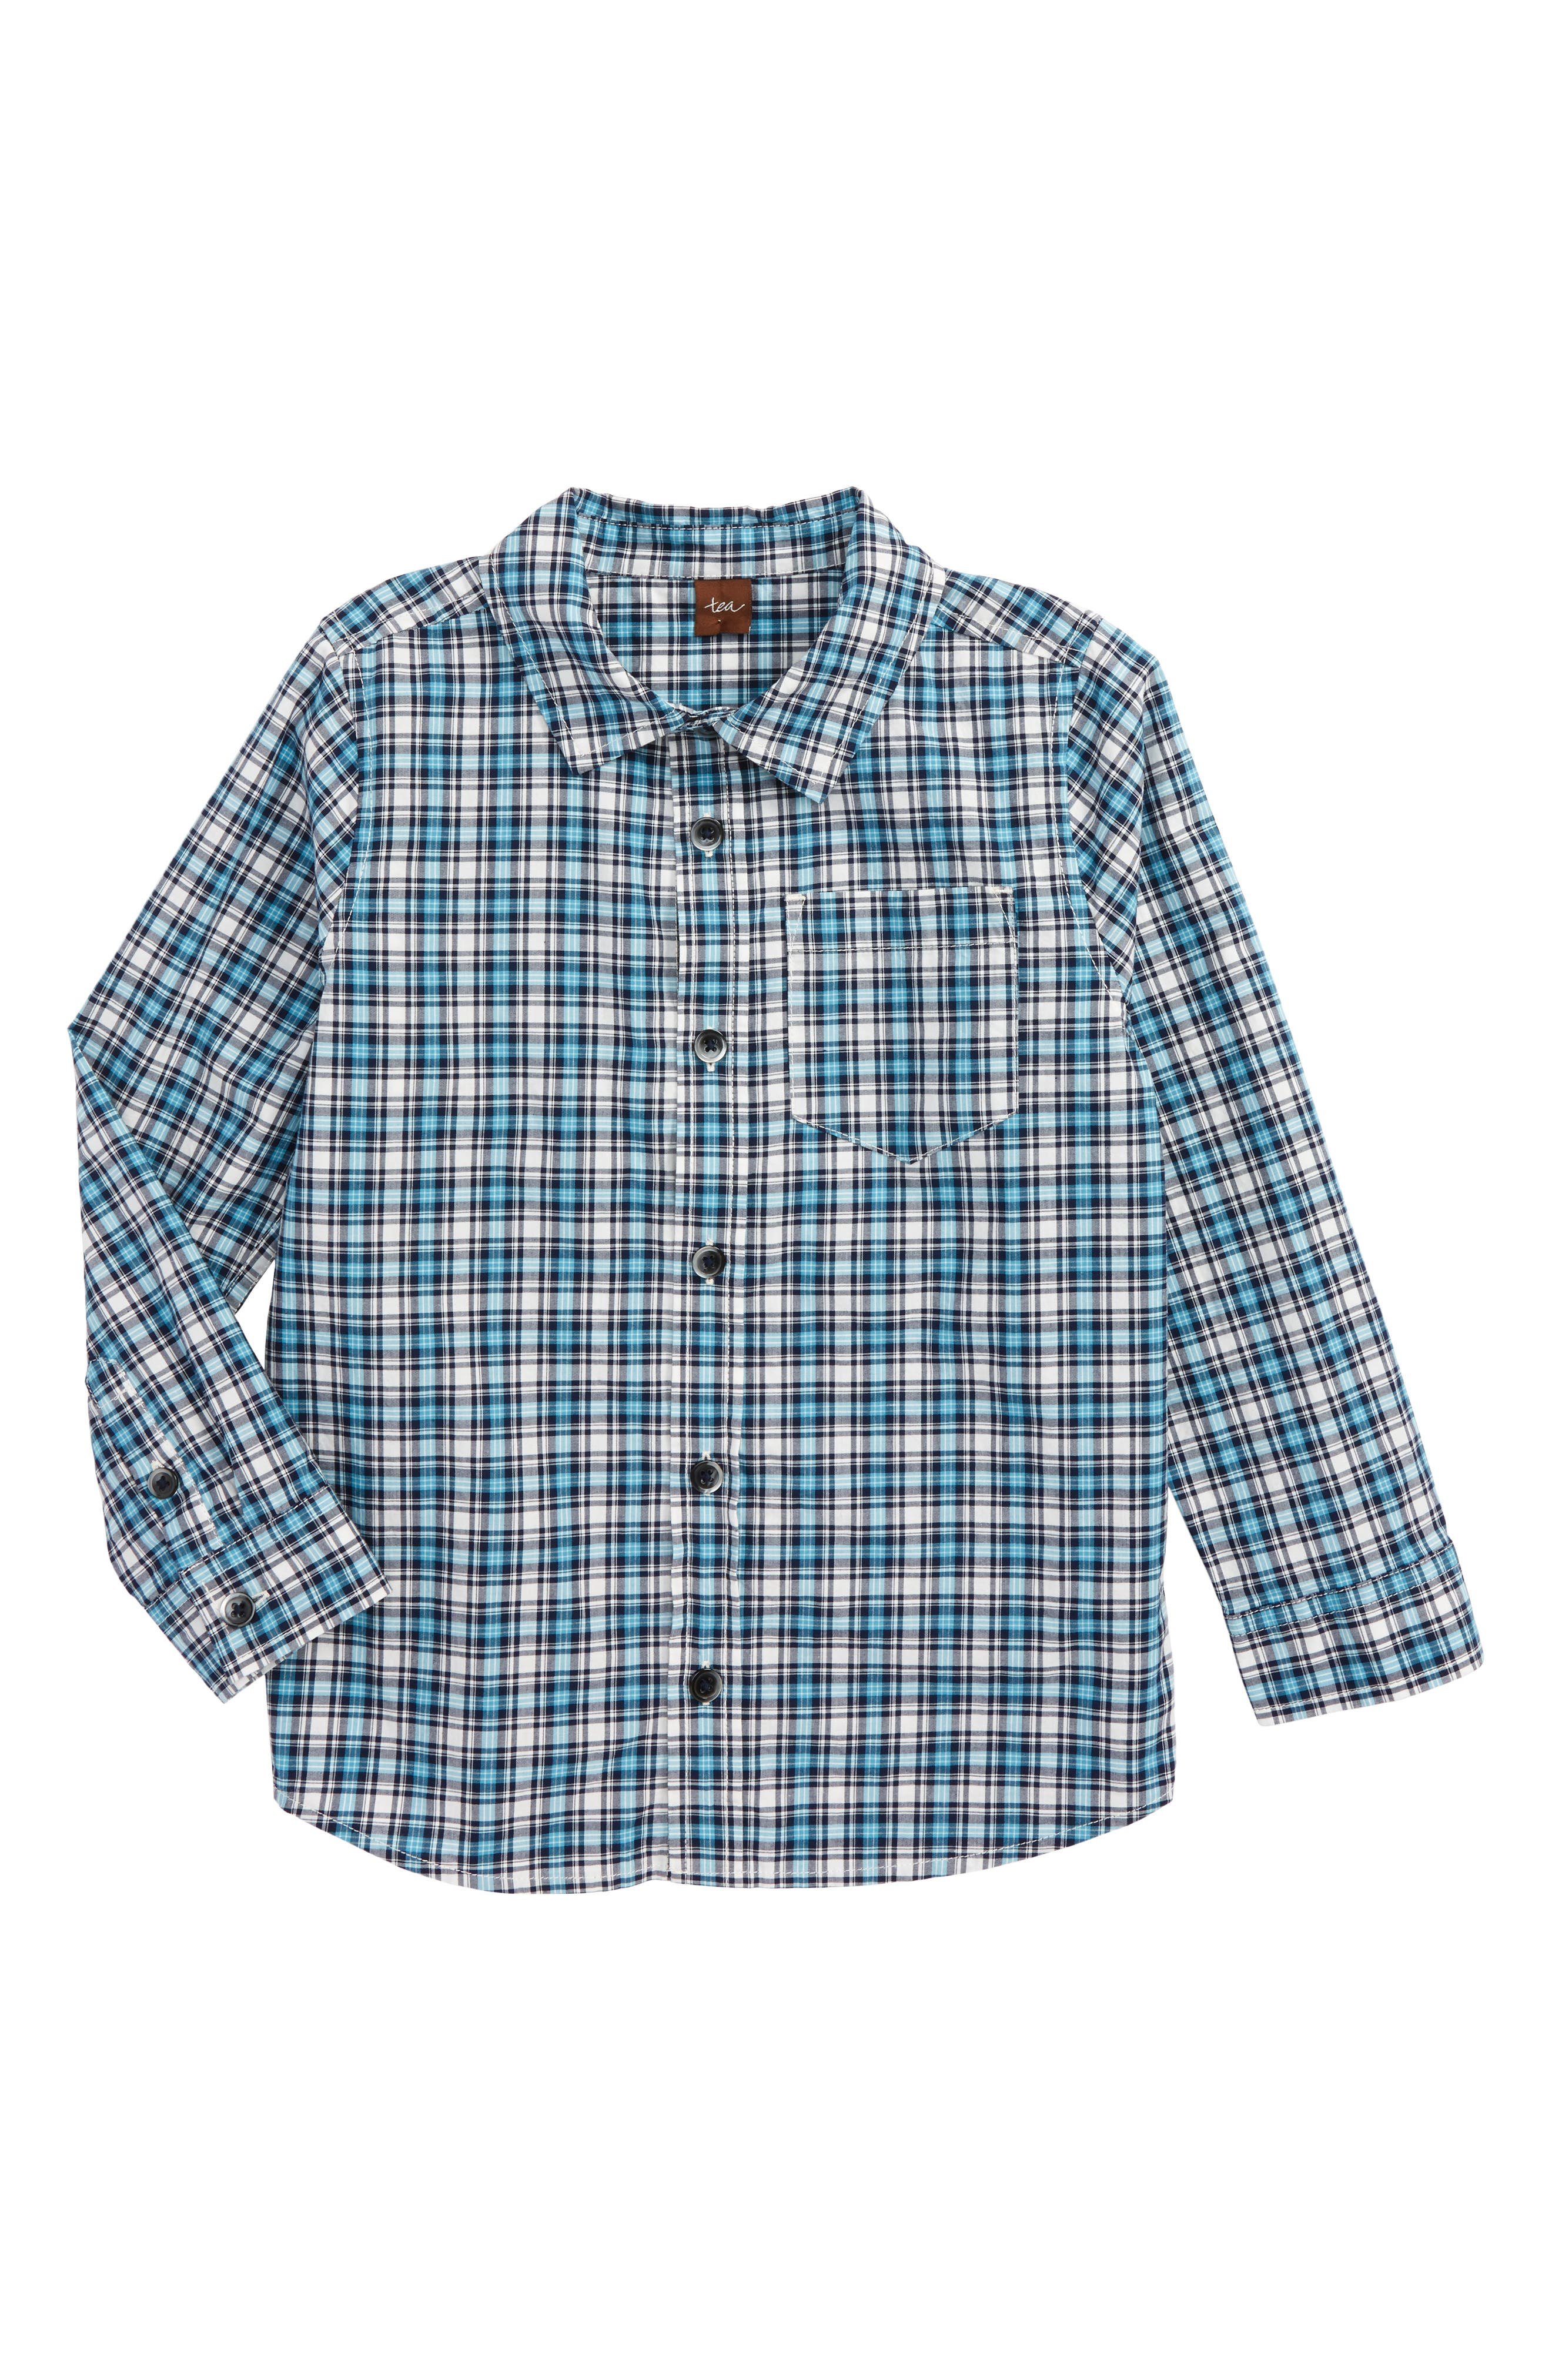 Main Image - Tea Collection Heath Plaid Woven Shirt (Toddler Boys & Little Boys)